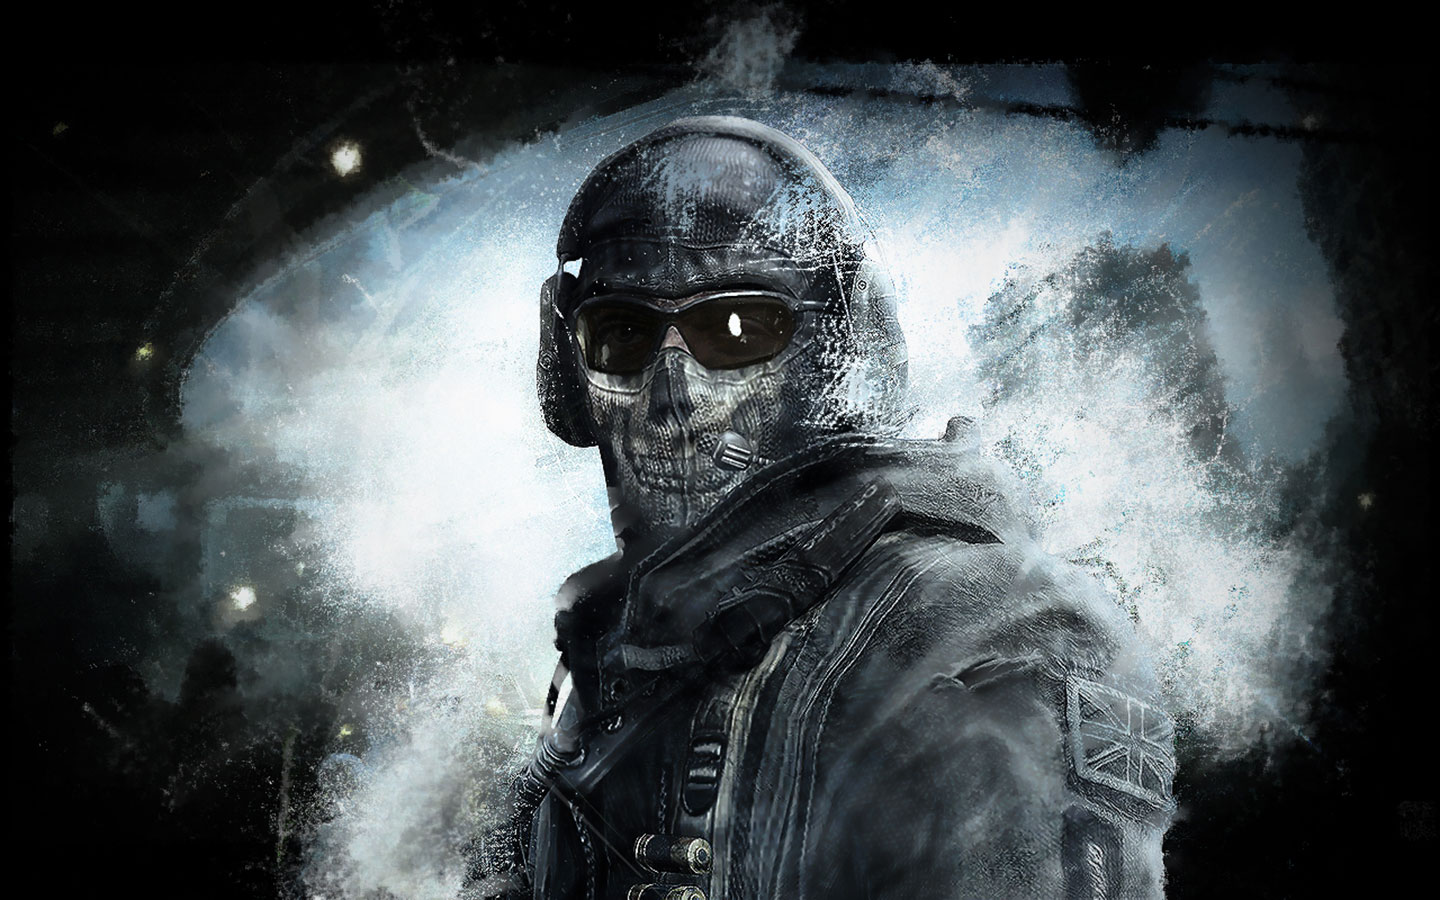 Games Wallpapers - Call Of Duty - Modern Warfare 2 Ghost wallpaper